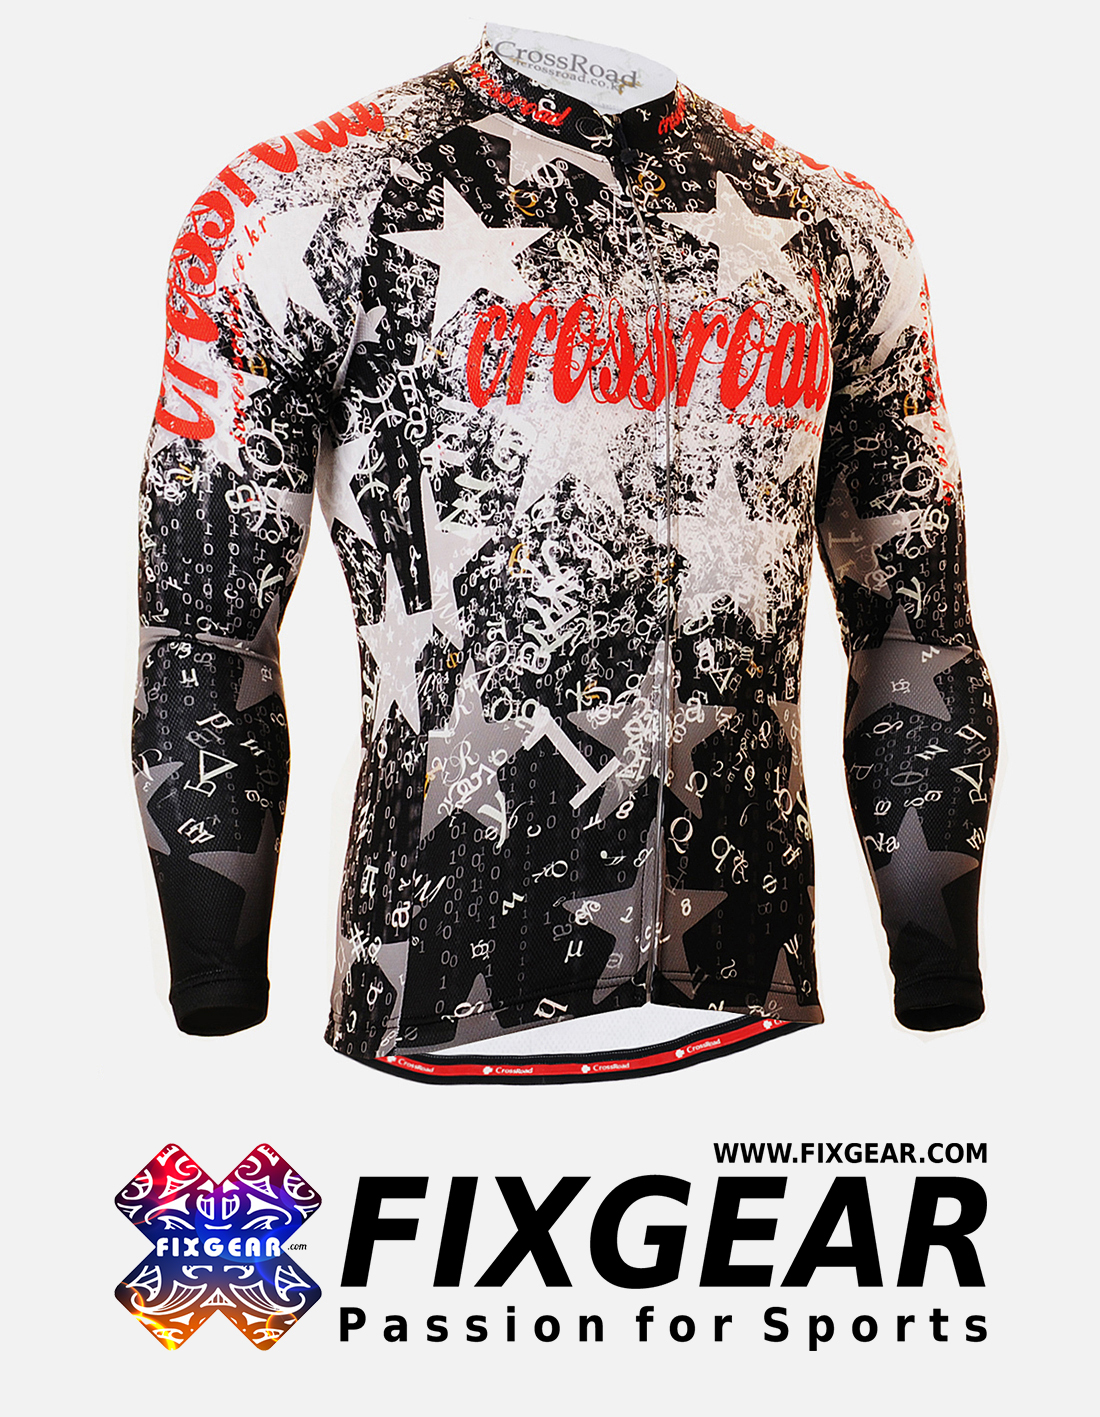 FIXGEAR CS-2401 Men's Cycling  Jersey Long Sleeve